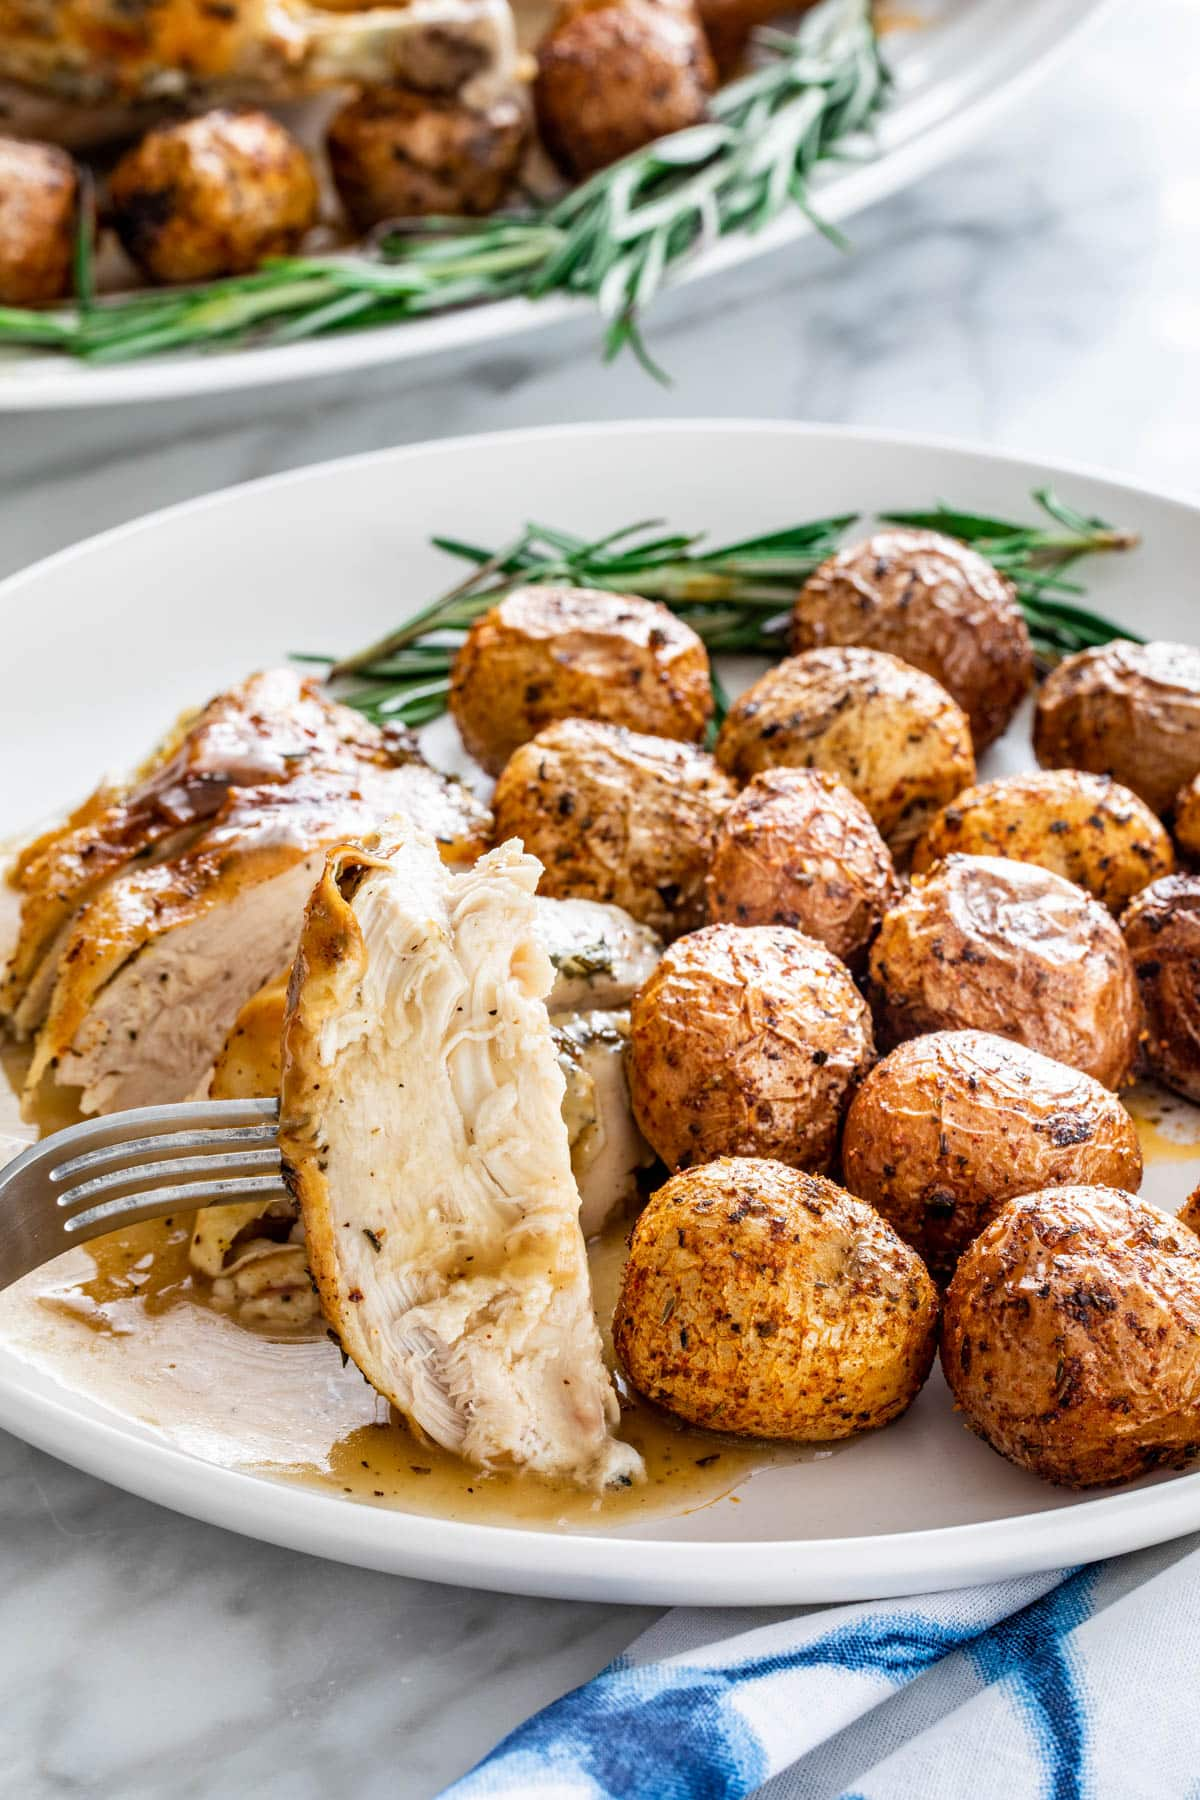 a white plate with sliced roasted chicken breast and roasted potatoes